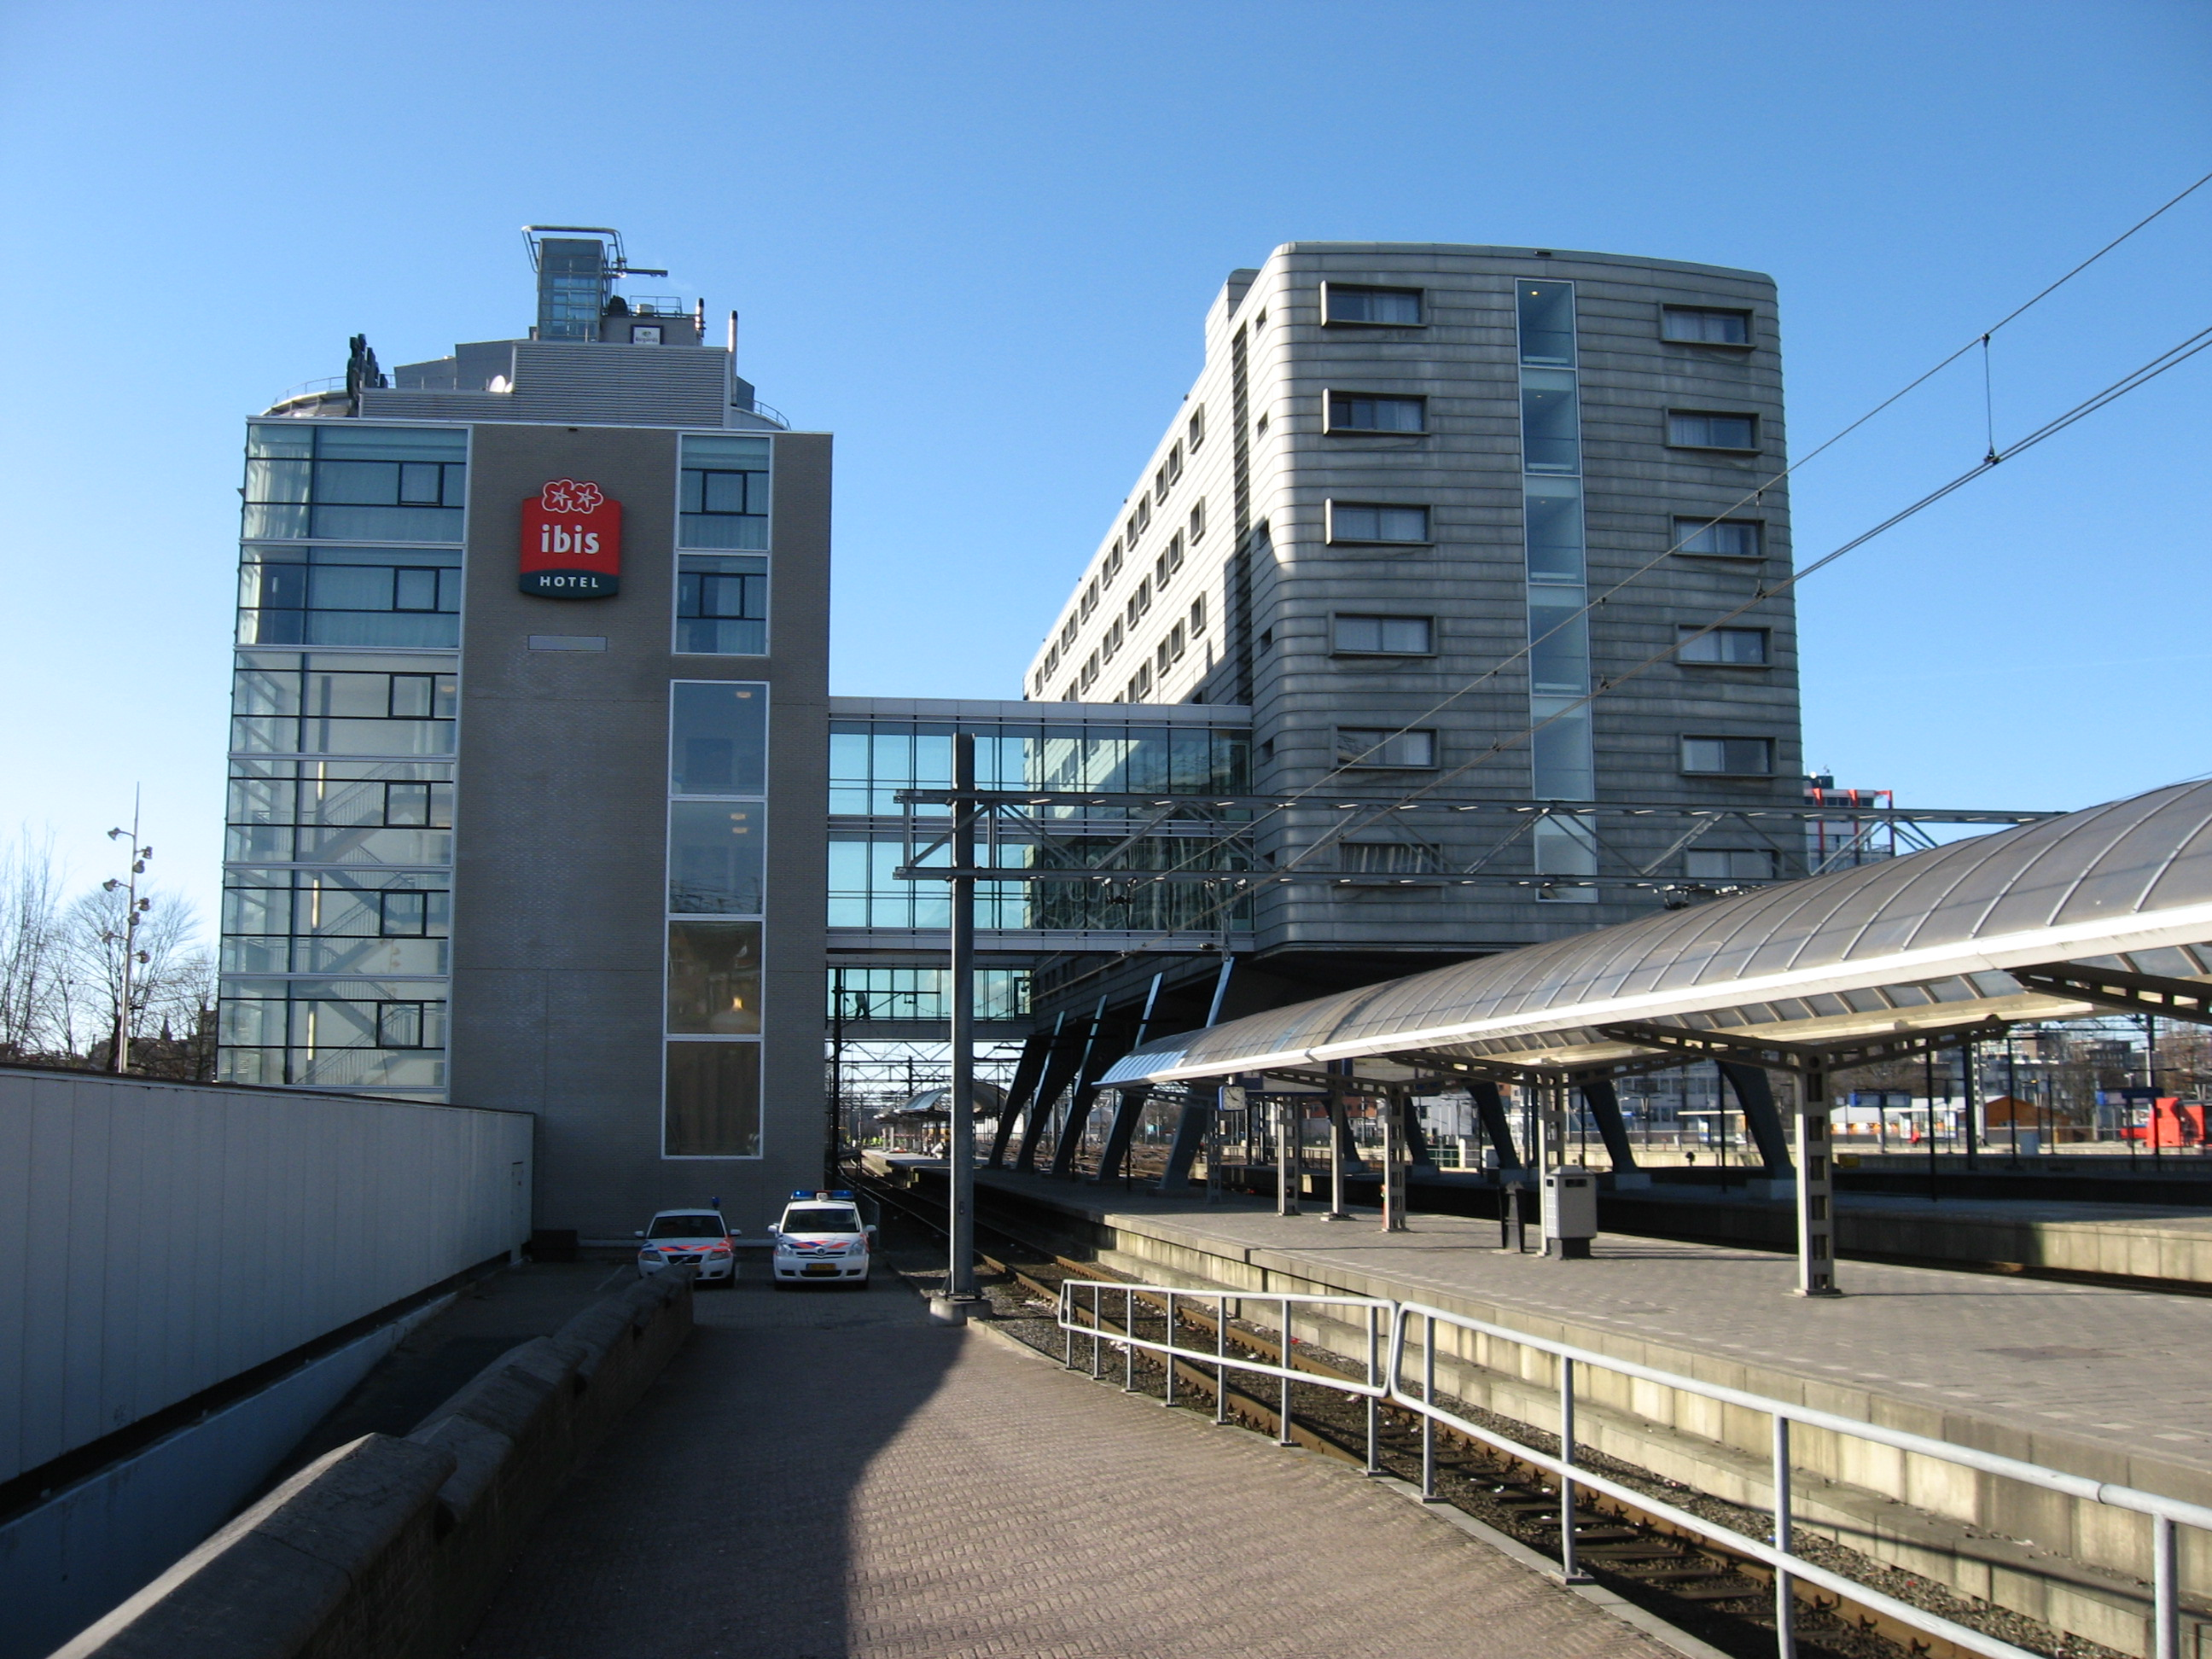 Permalink to Cheap Hotels In Amsterdam Central Station